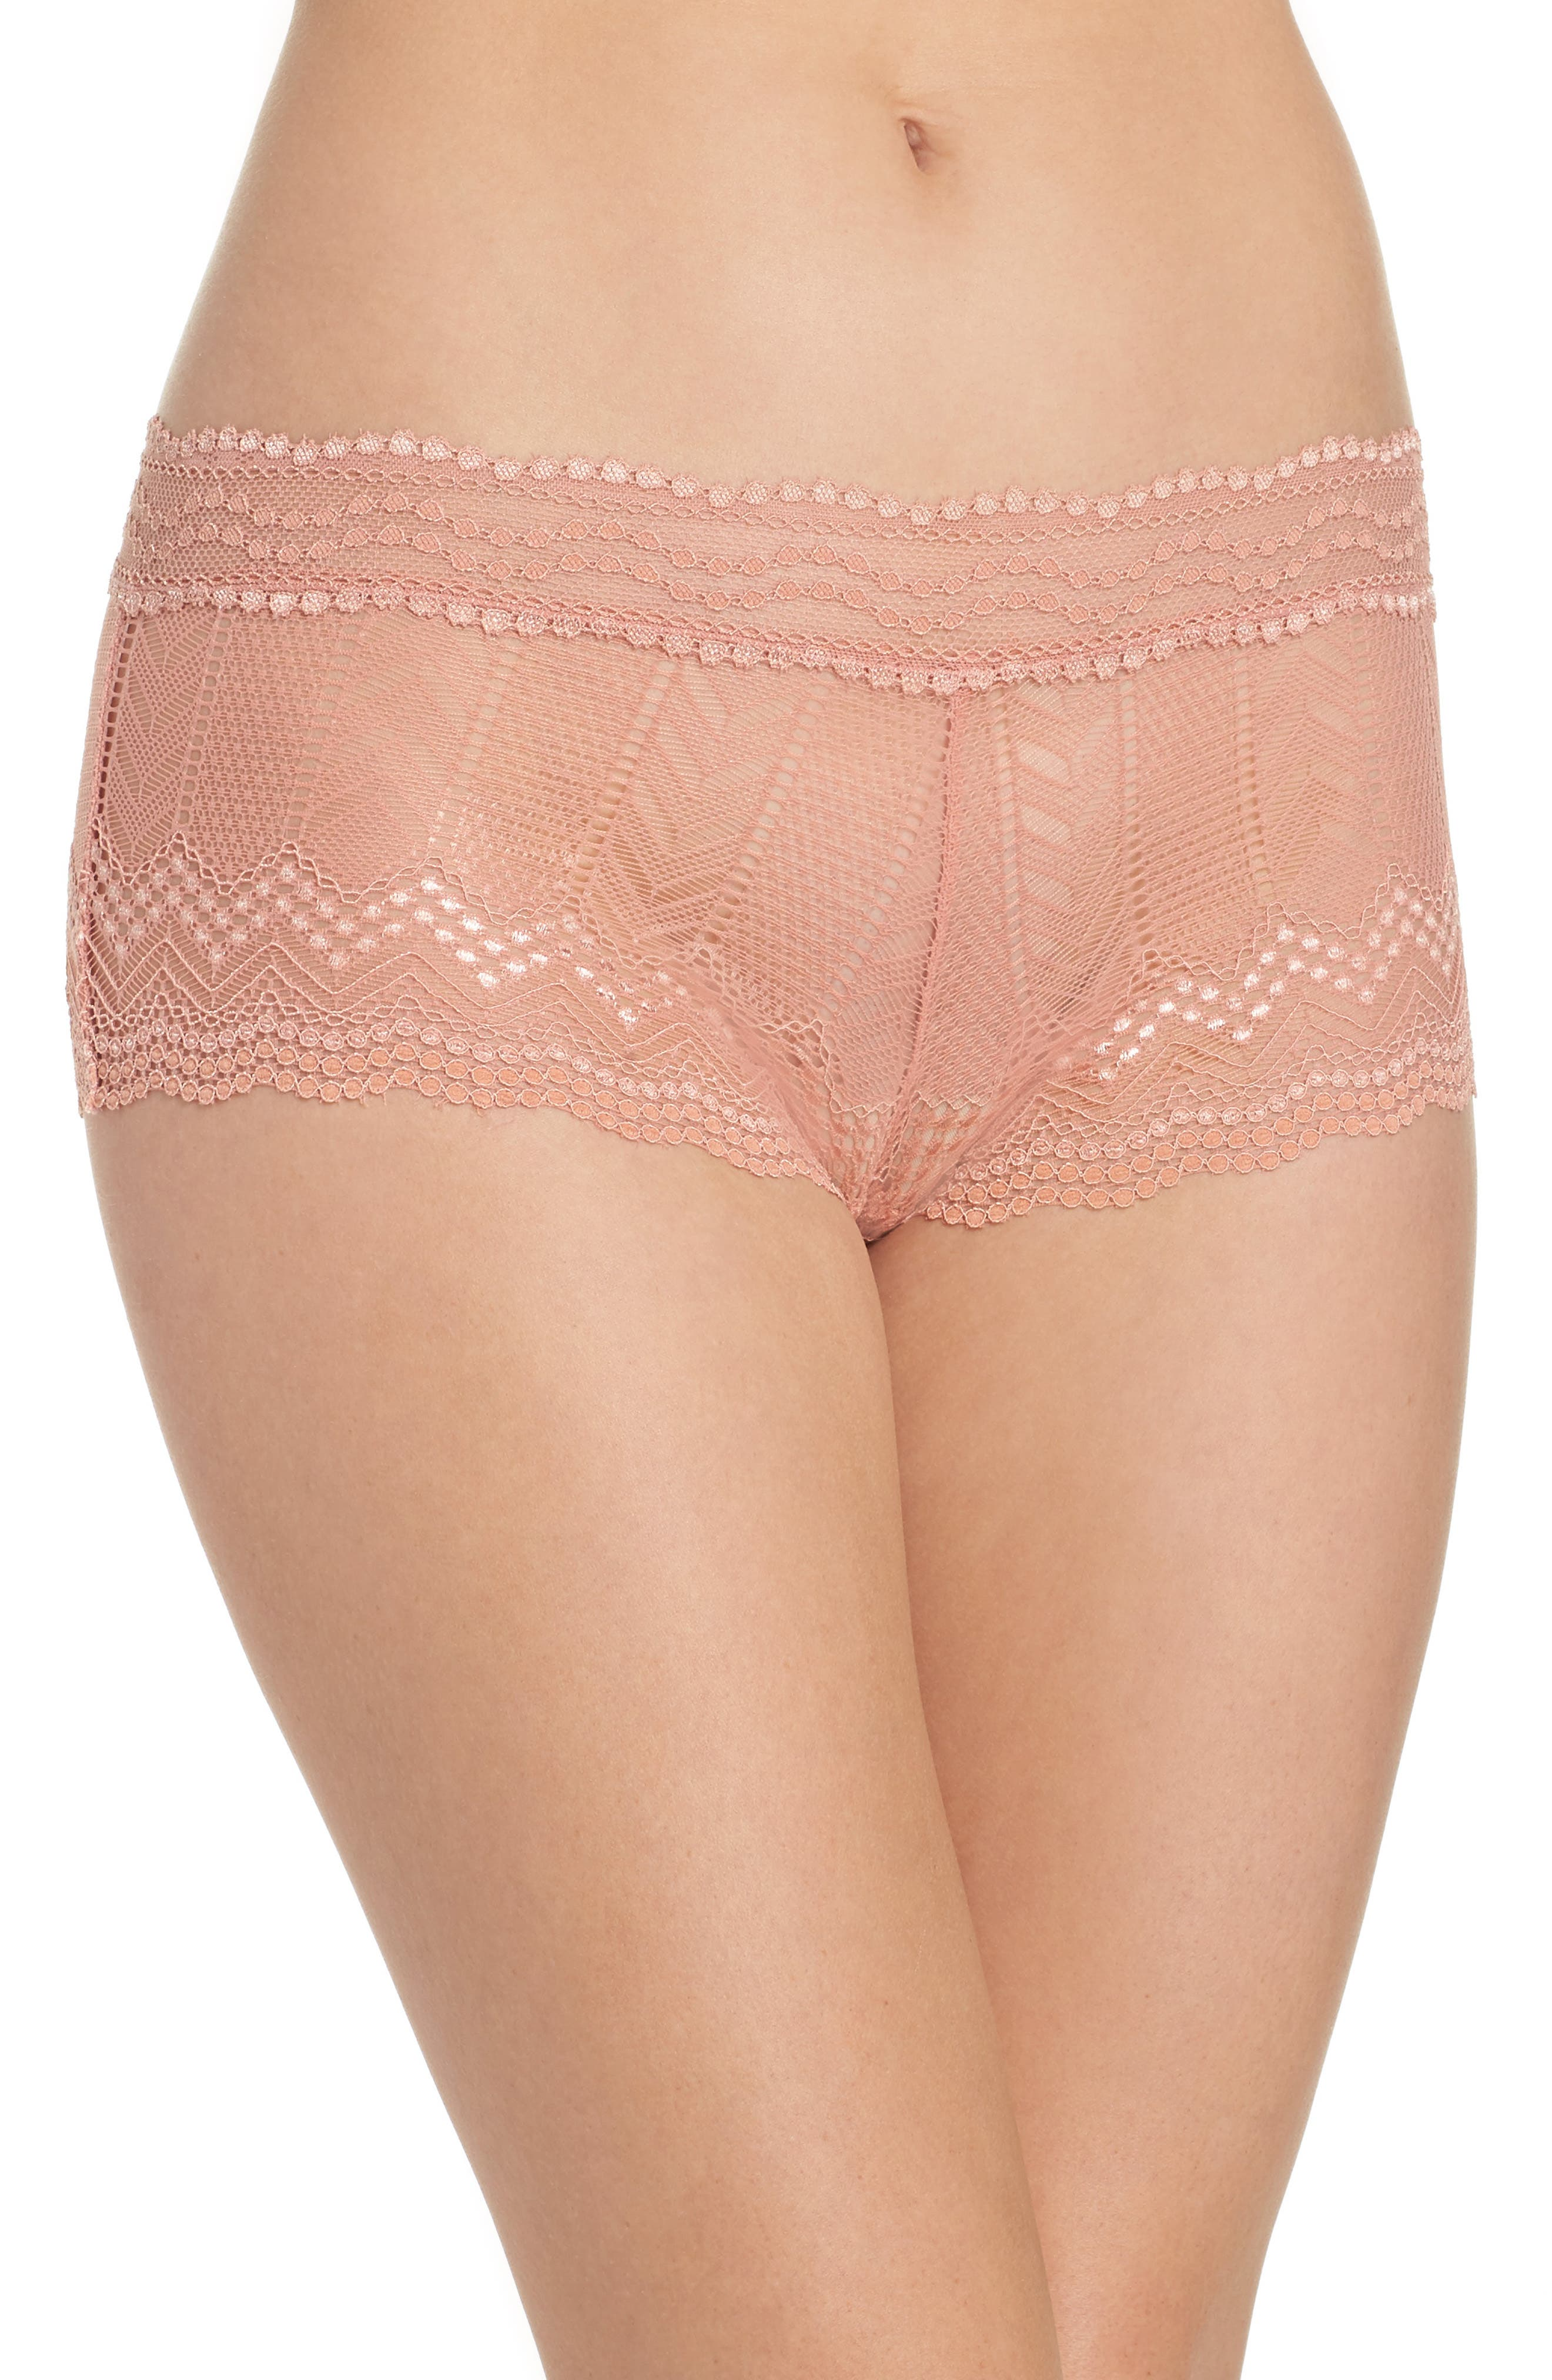 Vince Camuto Colette Boyshorts (3 for $33)